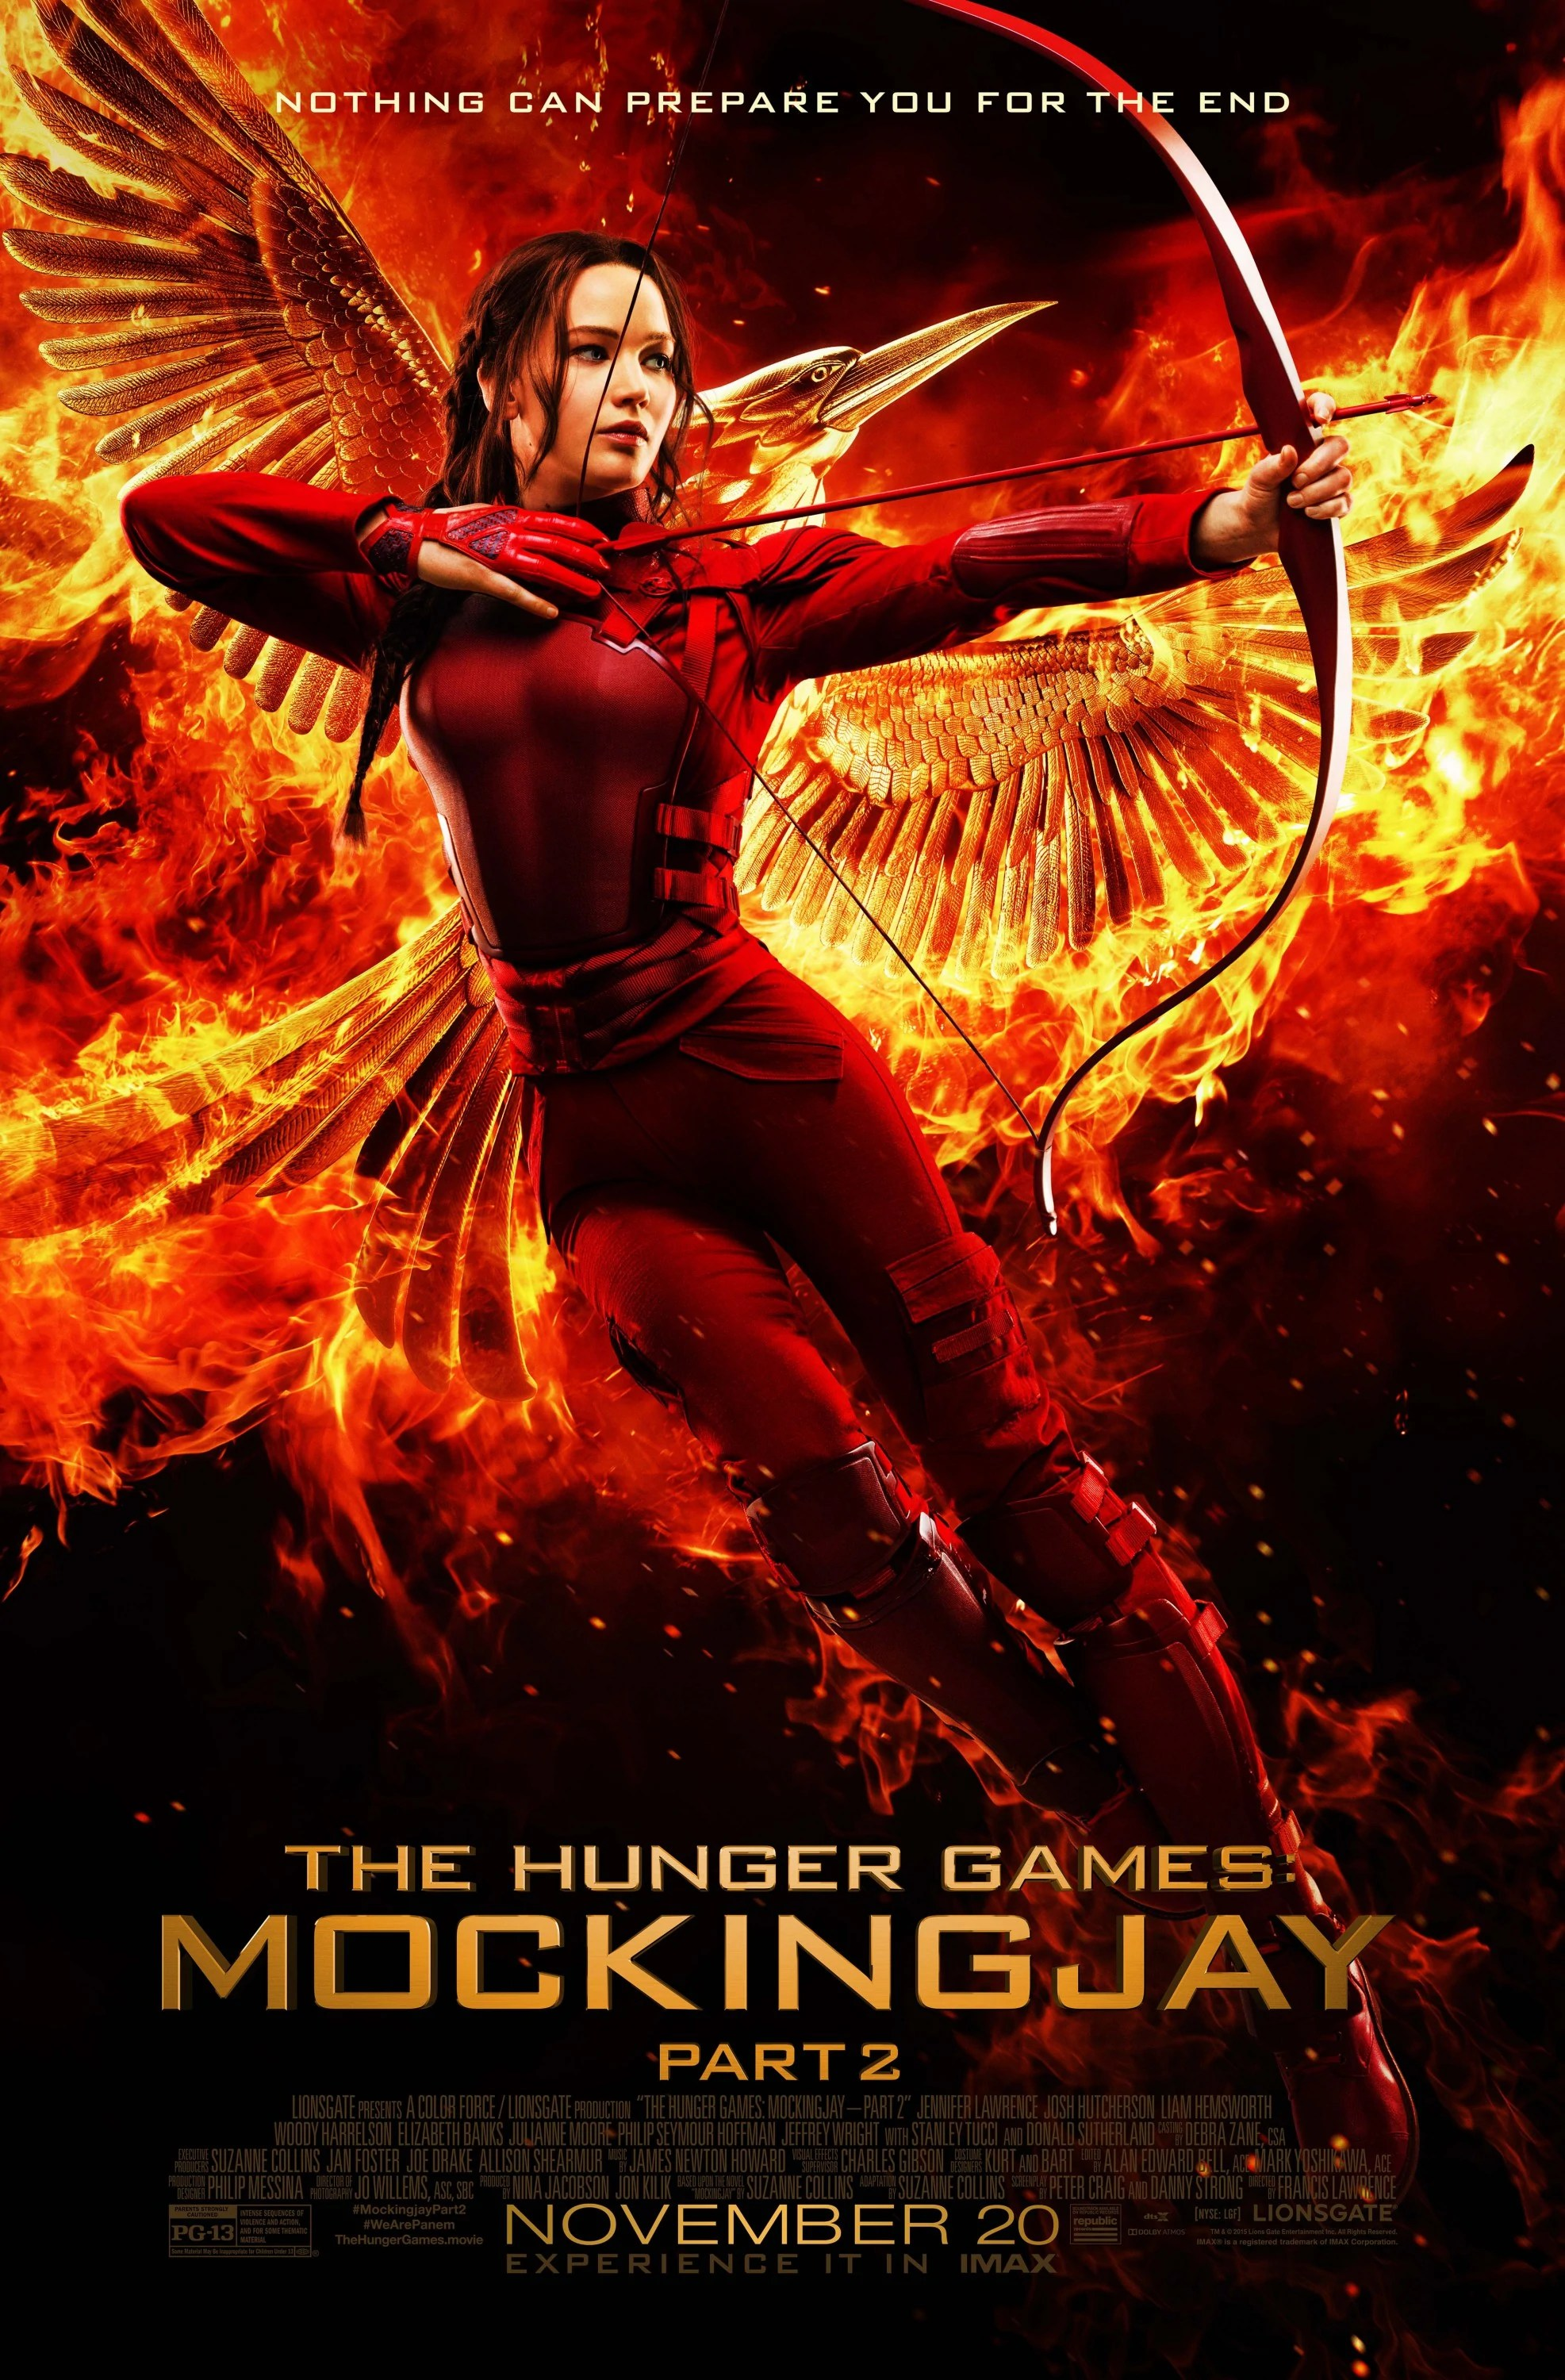 The Hunger Games: Mockingjay - Part 2   The Hunger Games Wiki   Fandom powered by Wikia